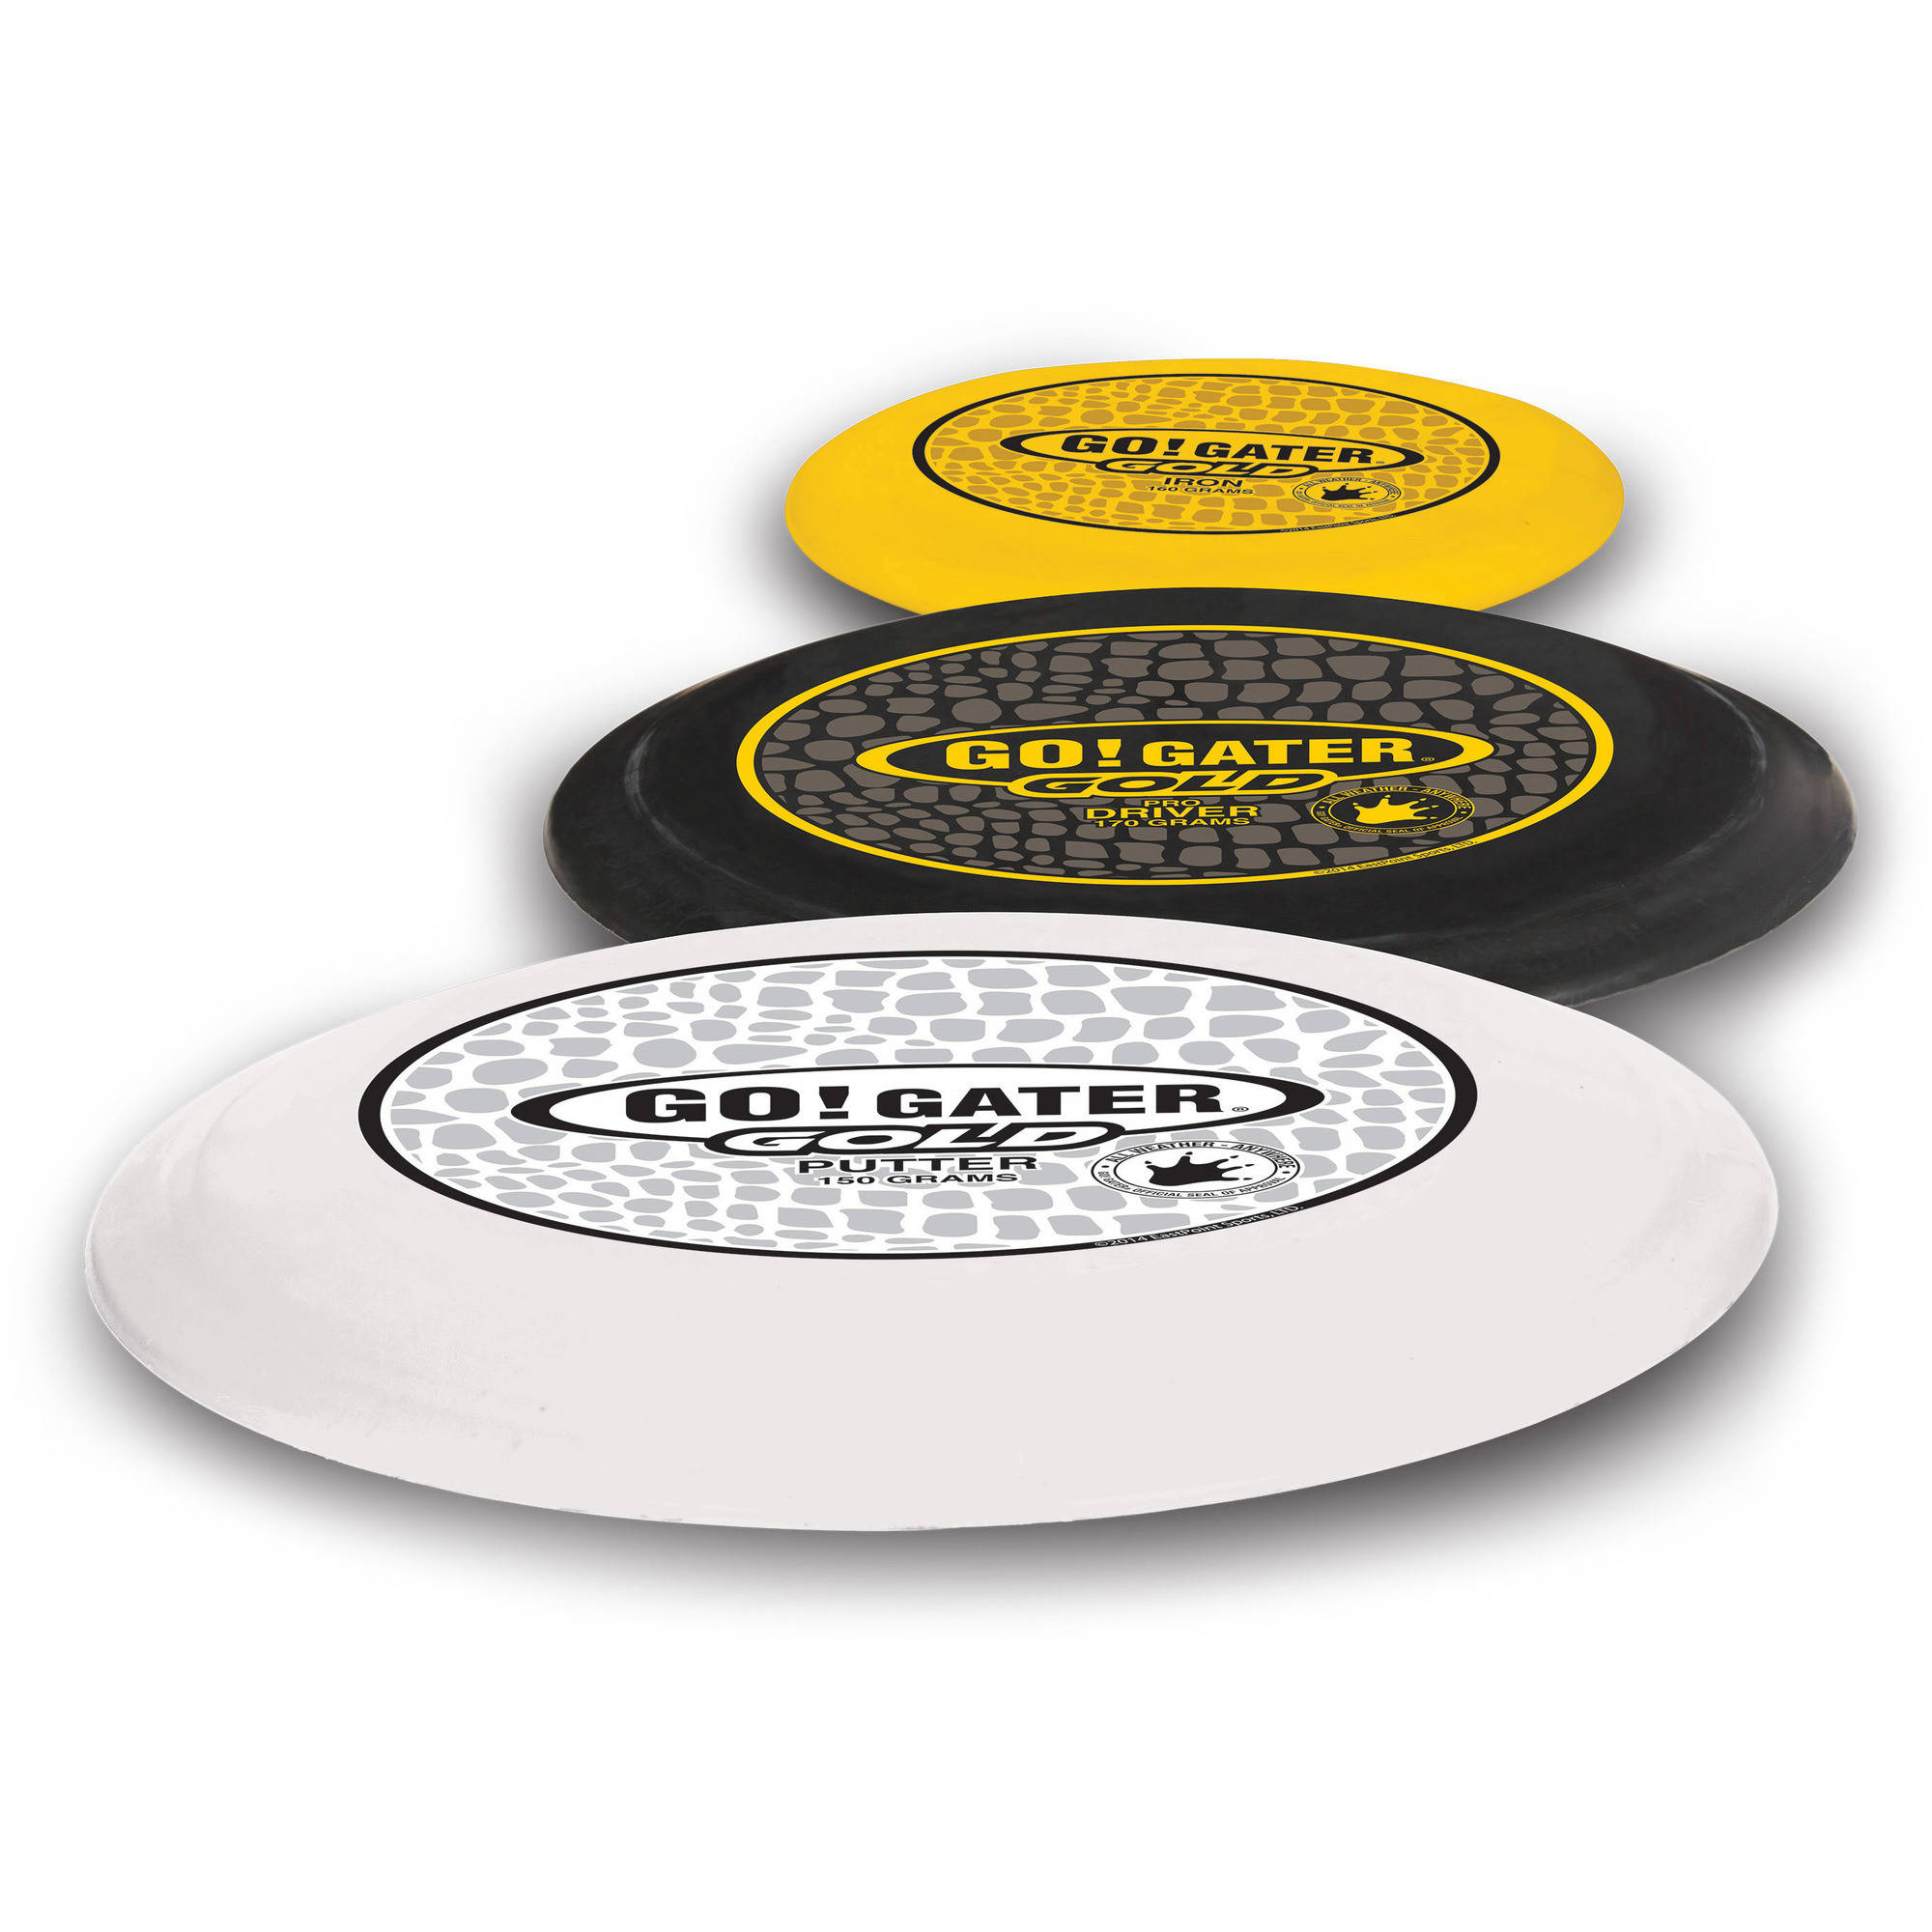 Go! Gater Gold Disc Golf Disc Set with Carry Caddy